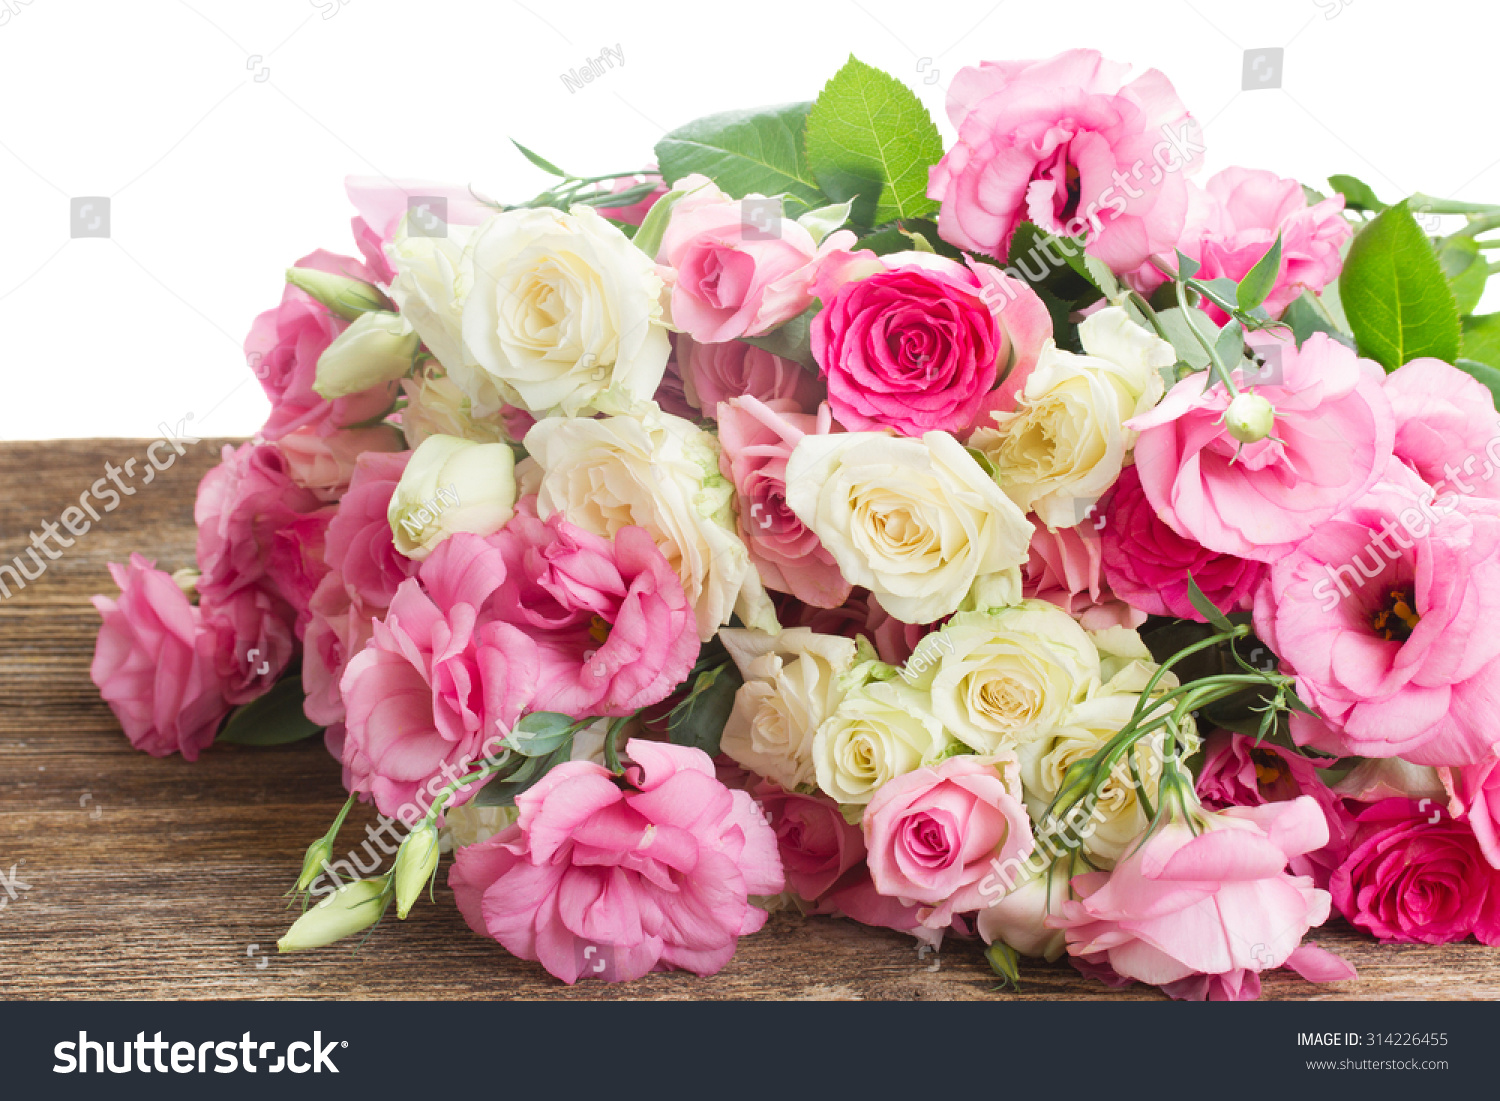 Pink And White Fresh Ranunculus Flowers Close Up Isolated On White